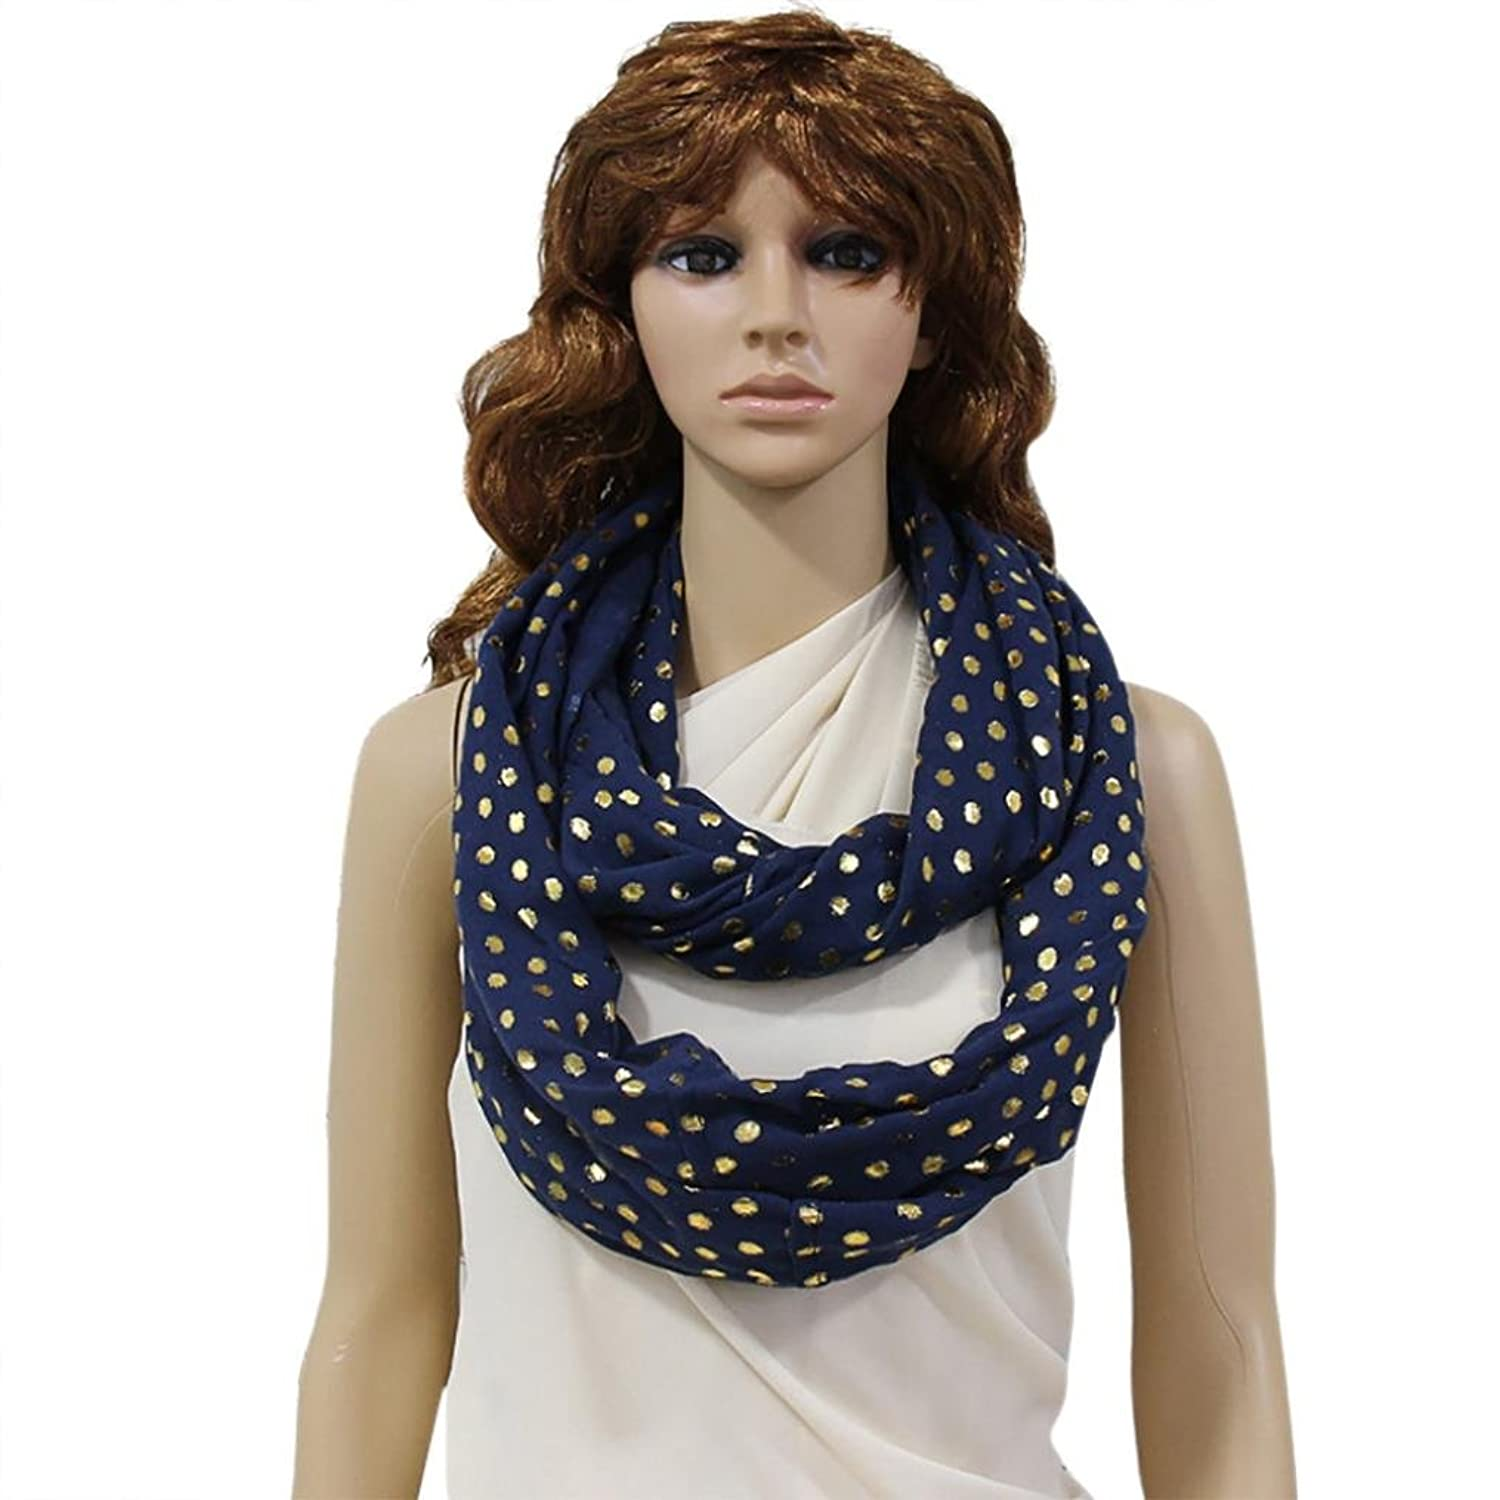 Mosunx(TM) Fashion Women's Scarves Hot Gold Dot Scarf Girls Wrap Shawl